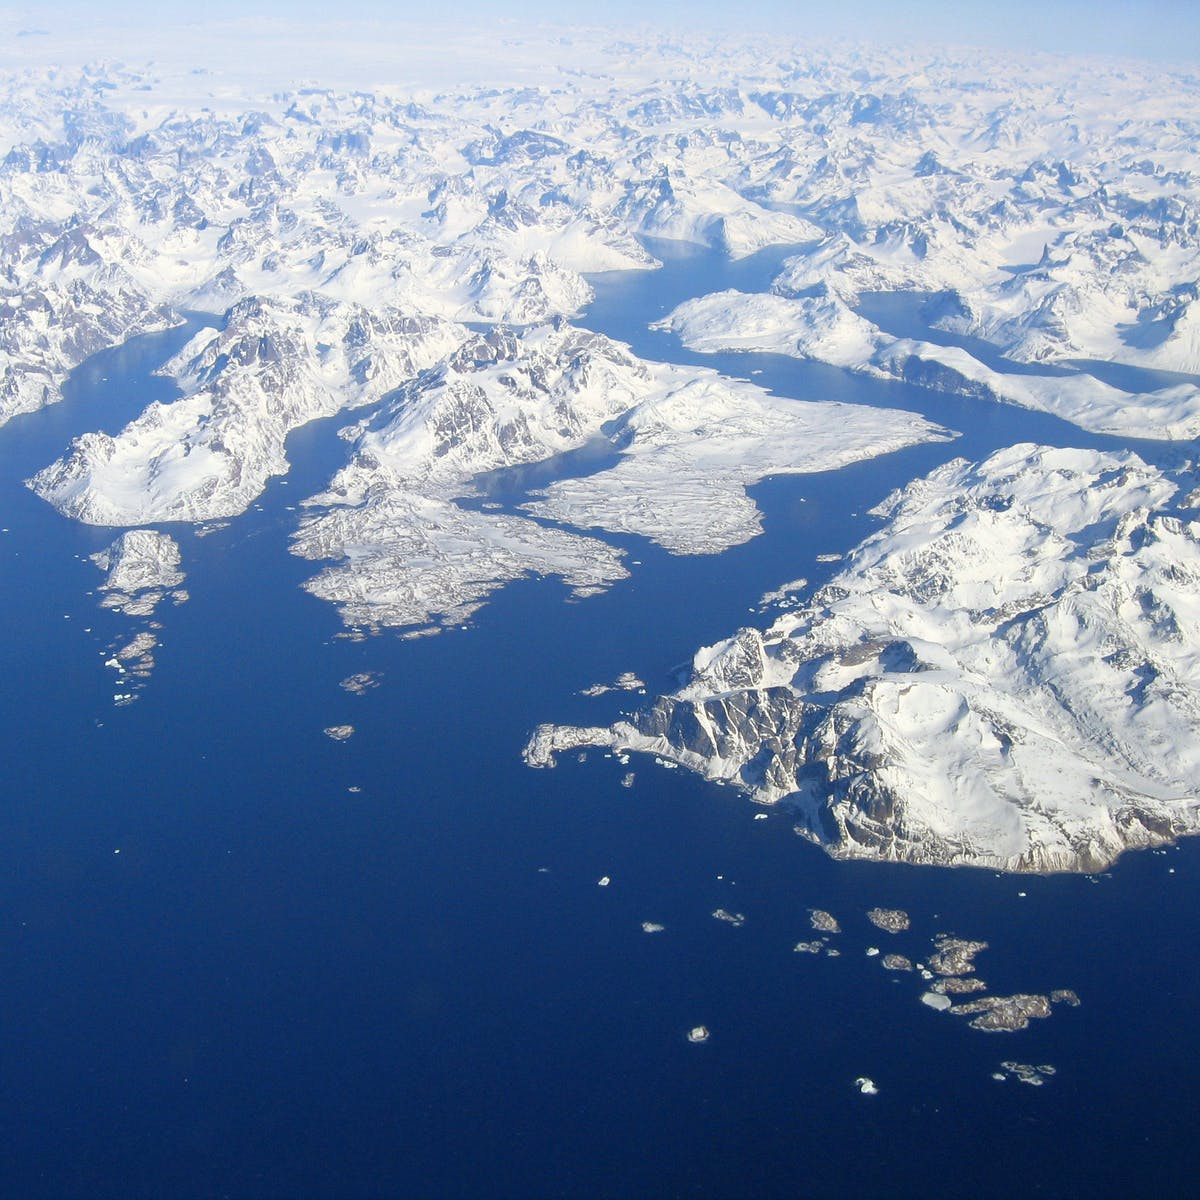 Record Arctic Ice Melt May Be Even Worse for Another Icy End of the Planet